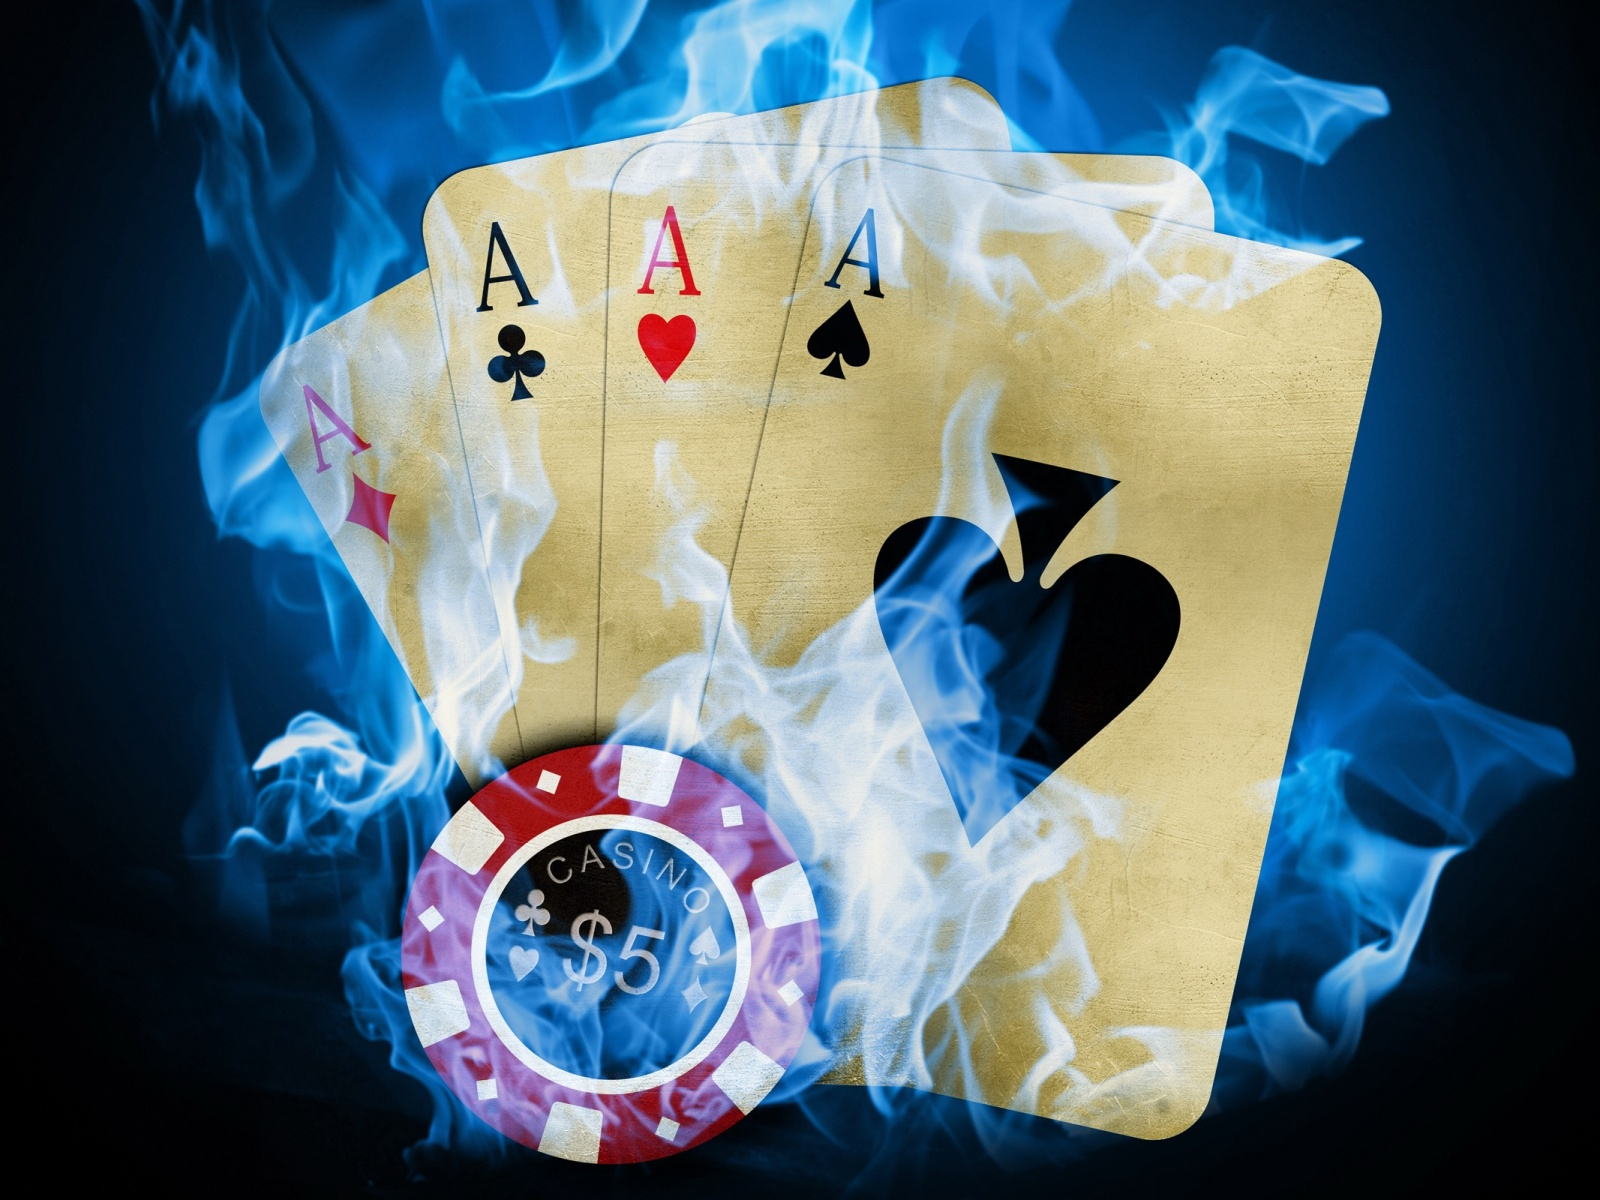 Casino Games Online - Gambling